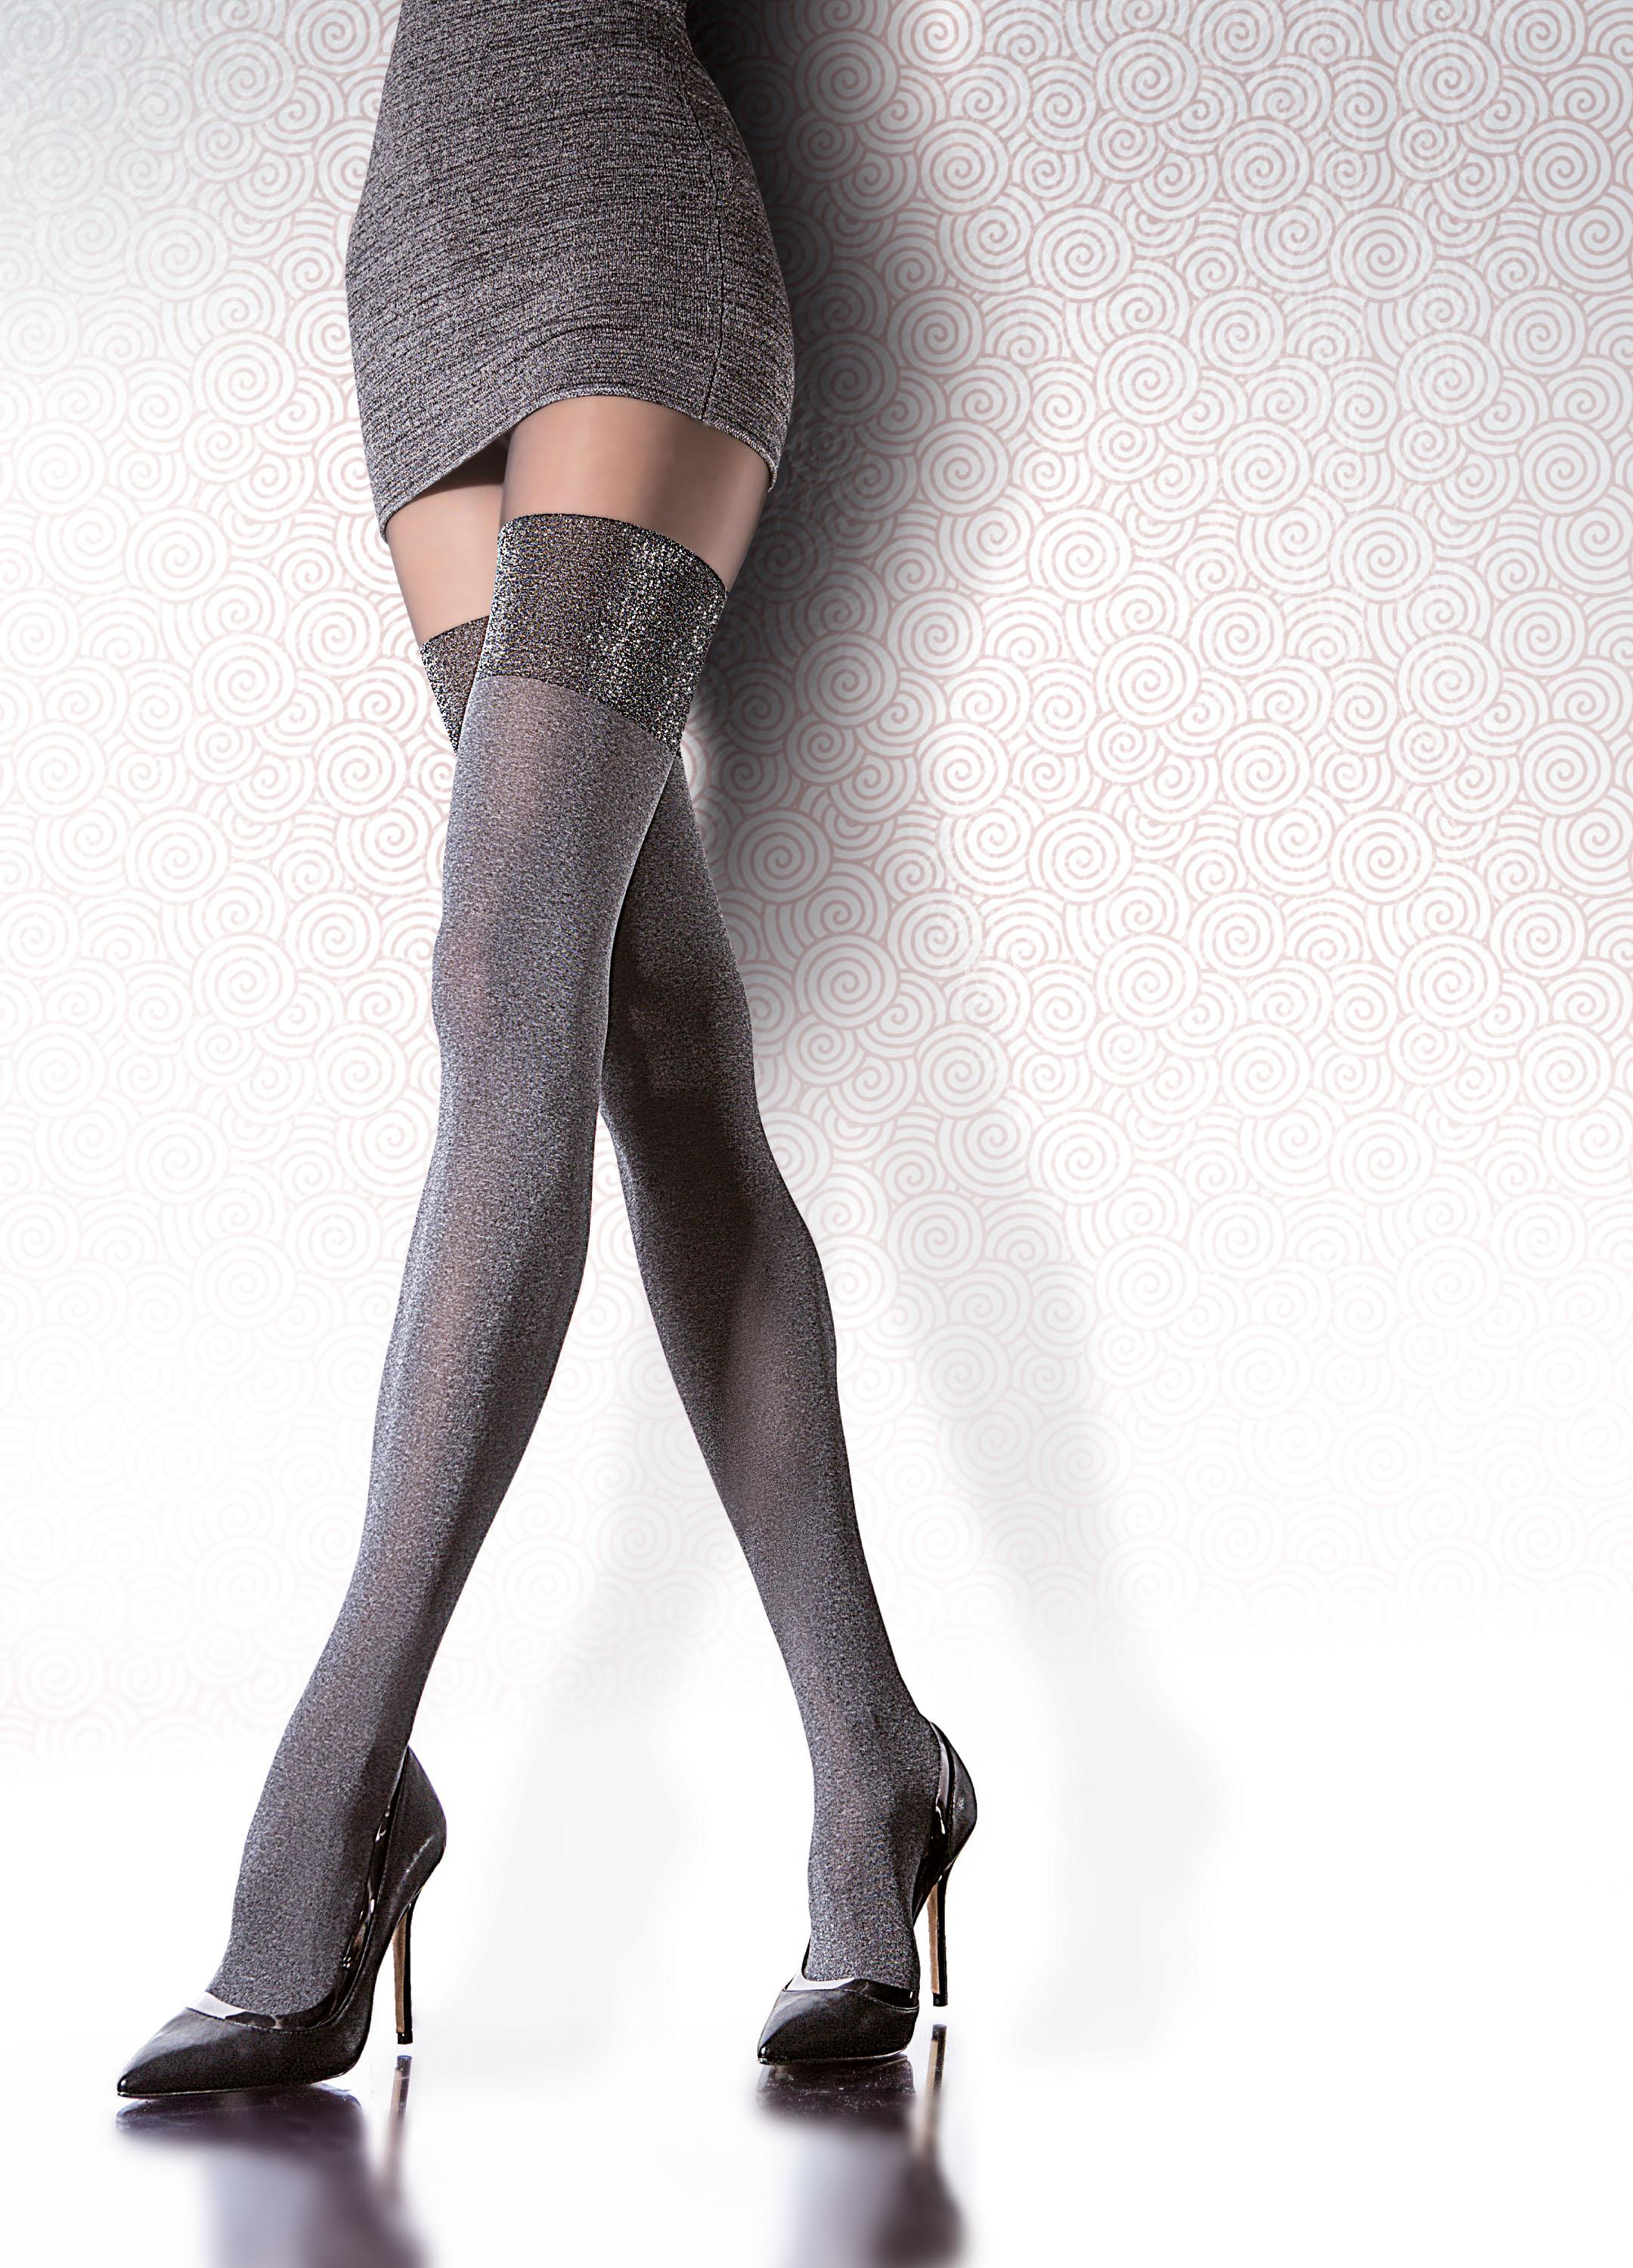 493898f0bde27 Fiore Caladia - 40 denier mock hold up tights with silver glitter ✅